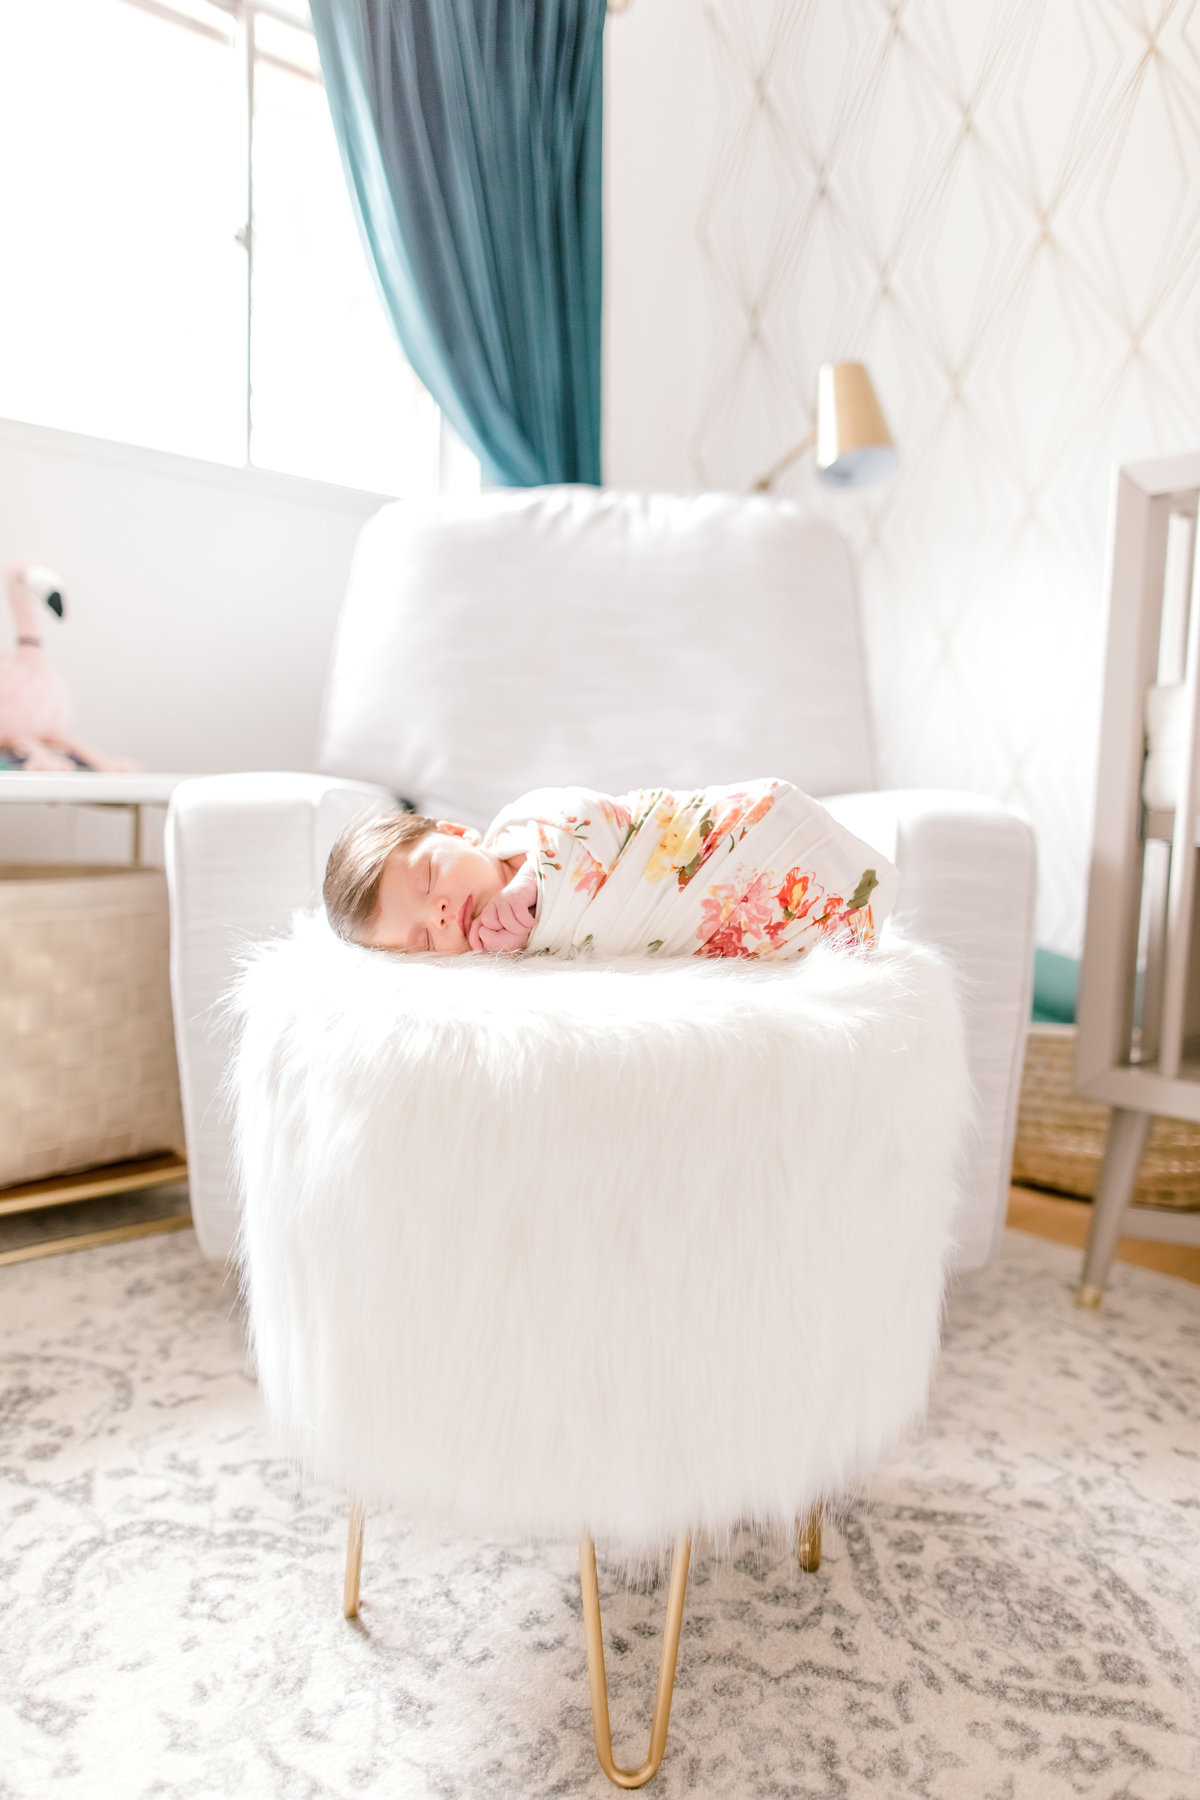 newborn-lifestyle-photo-houston-heights-texas-light-and-matter-photography-29